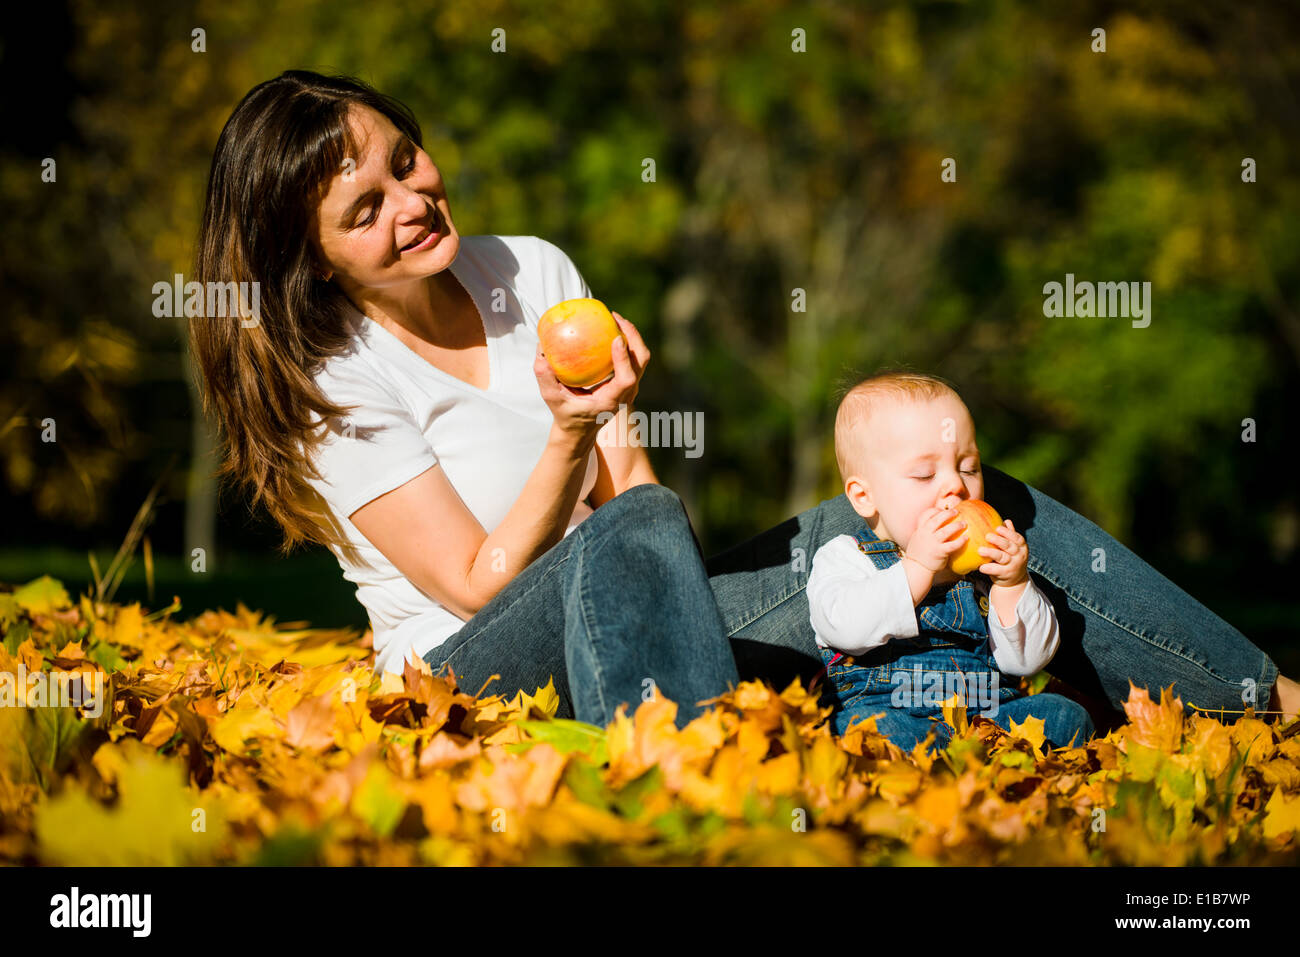 Mother with her cute baby eating apples outdoor in autumn nature